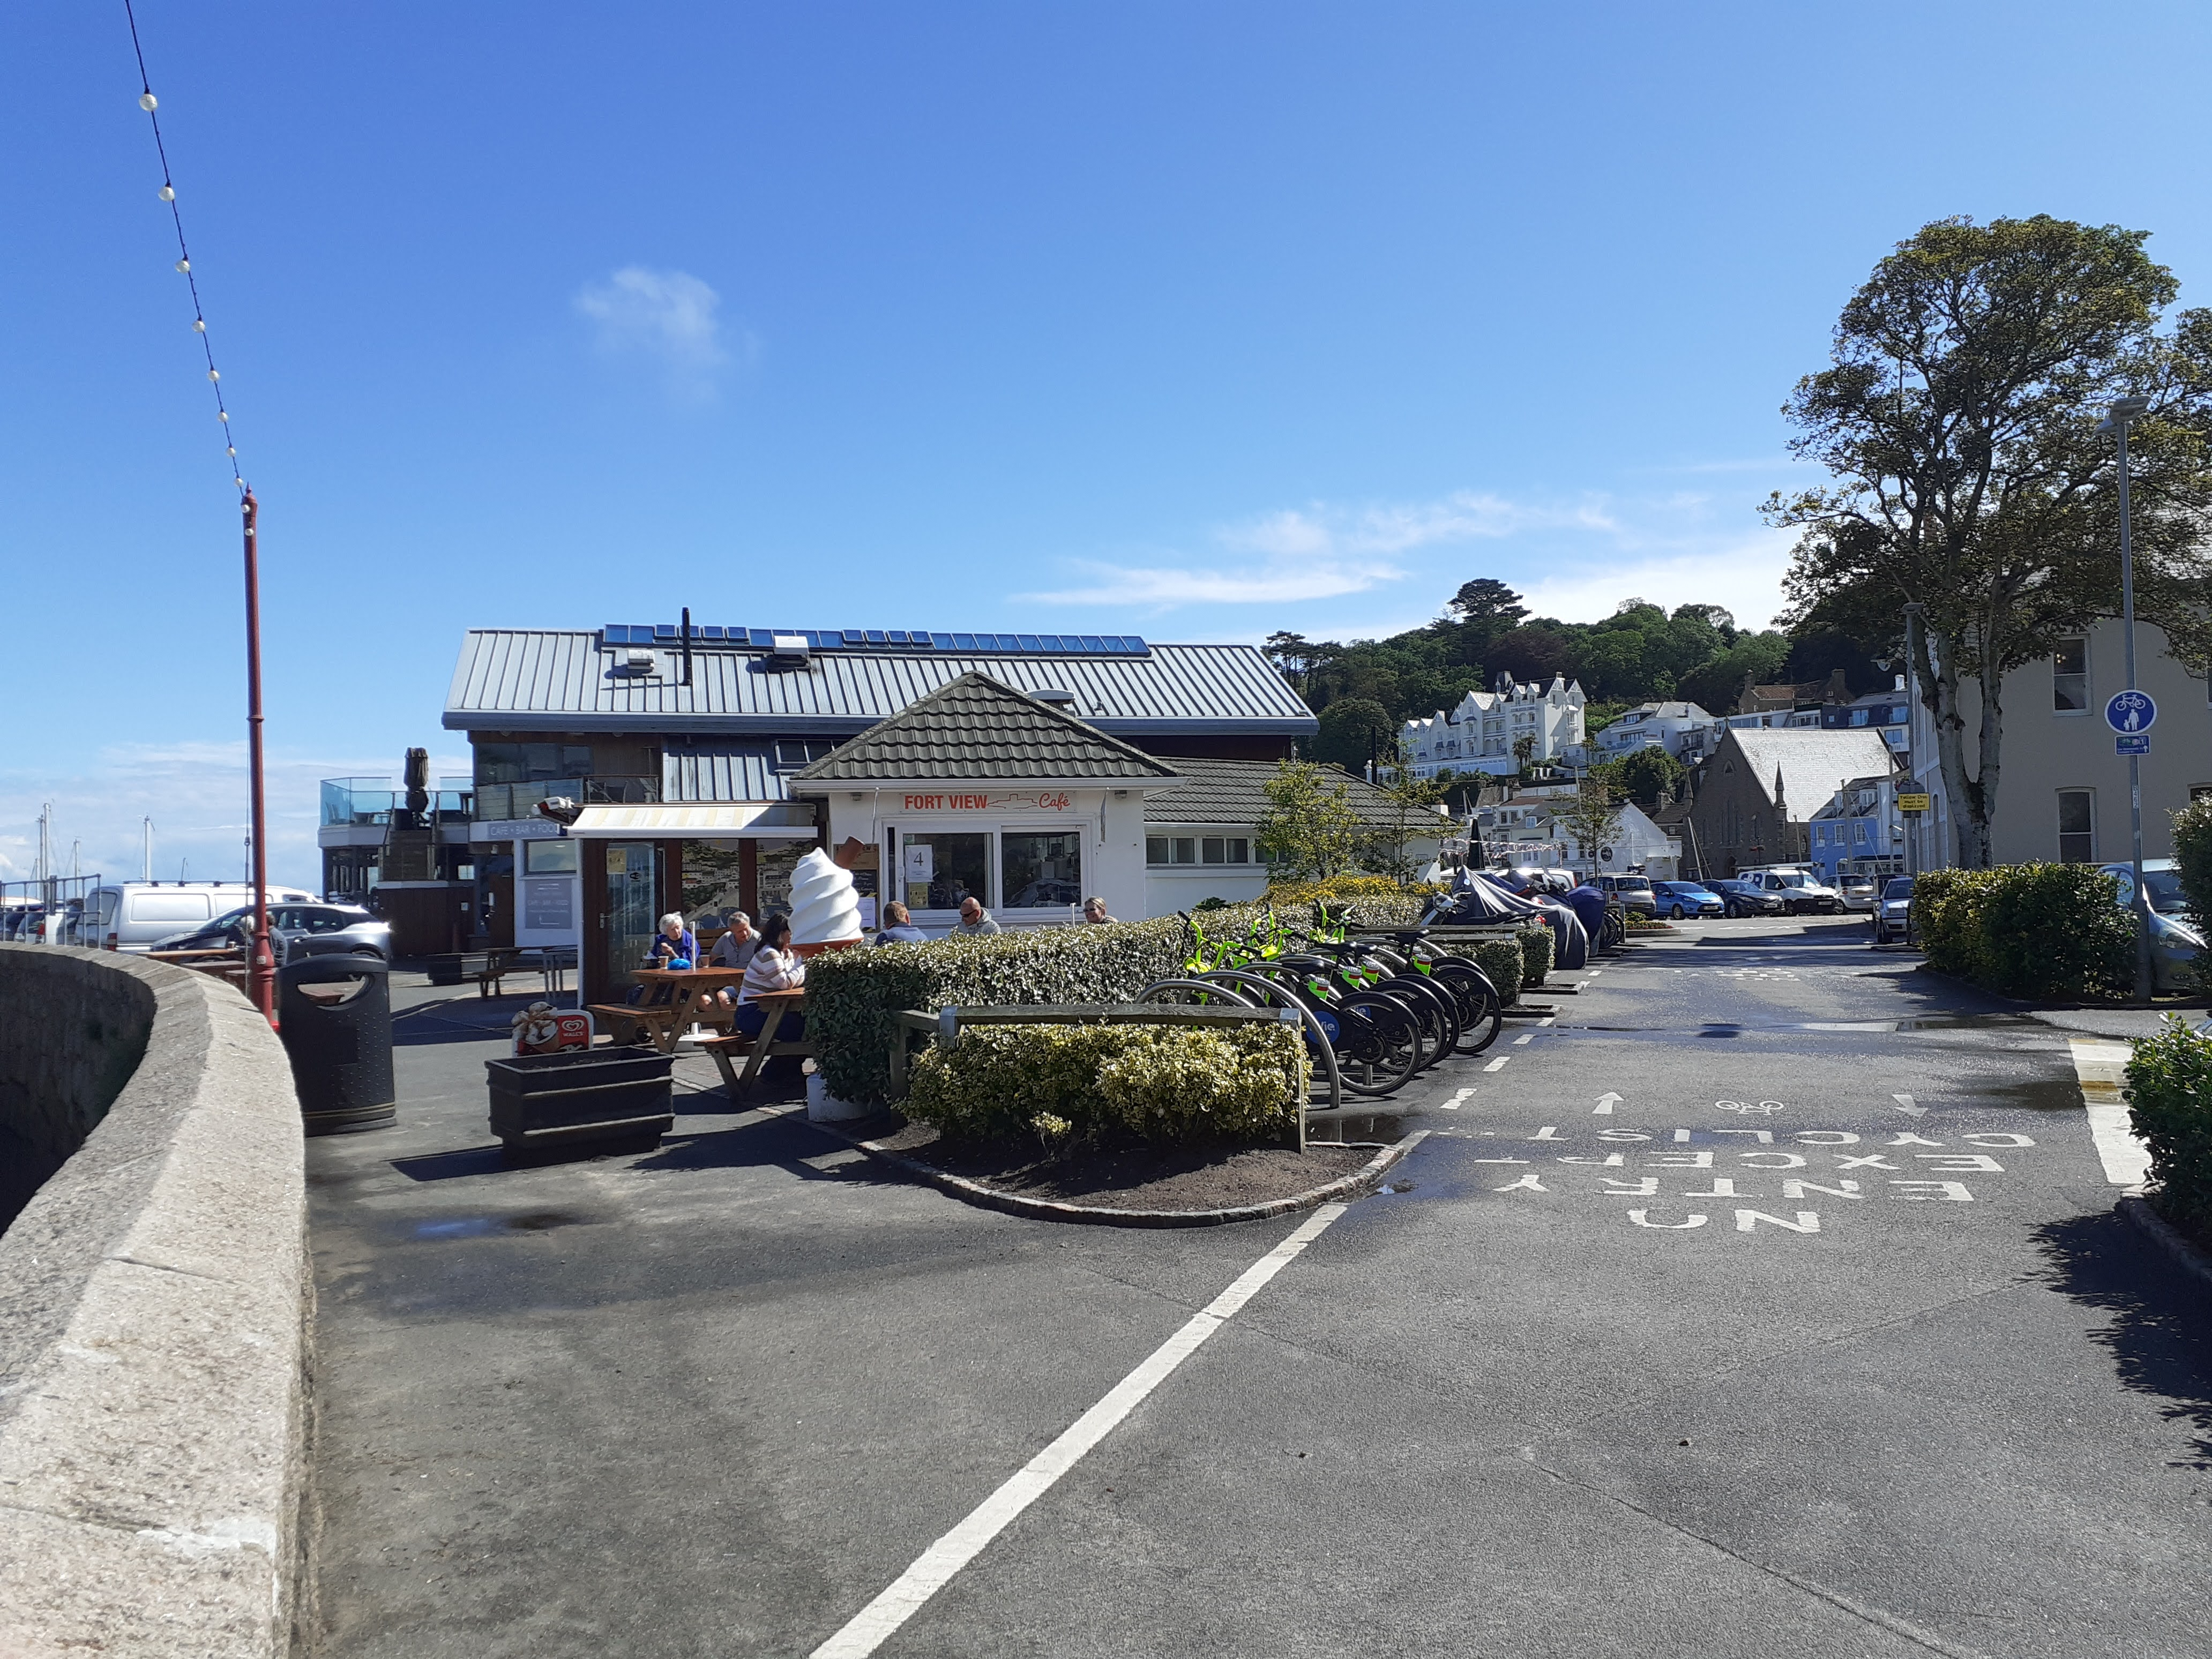 Fort View Cafe